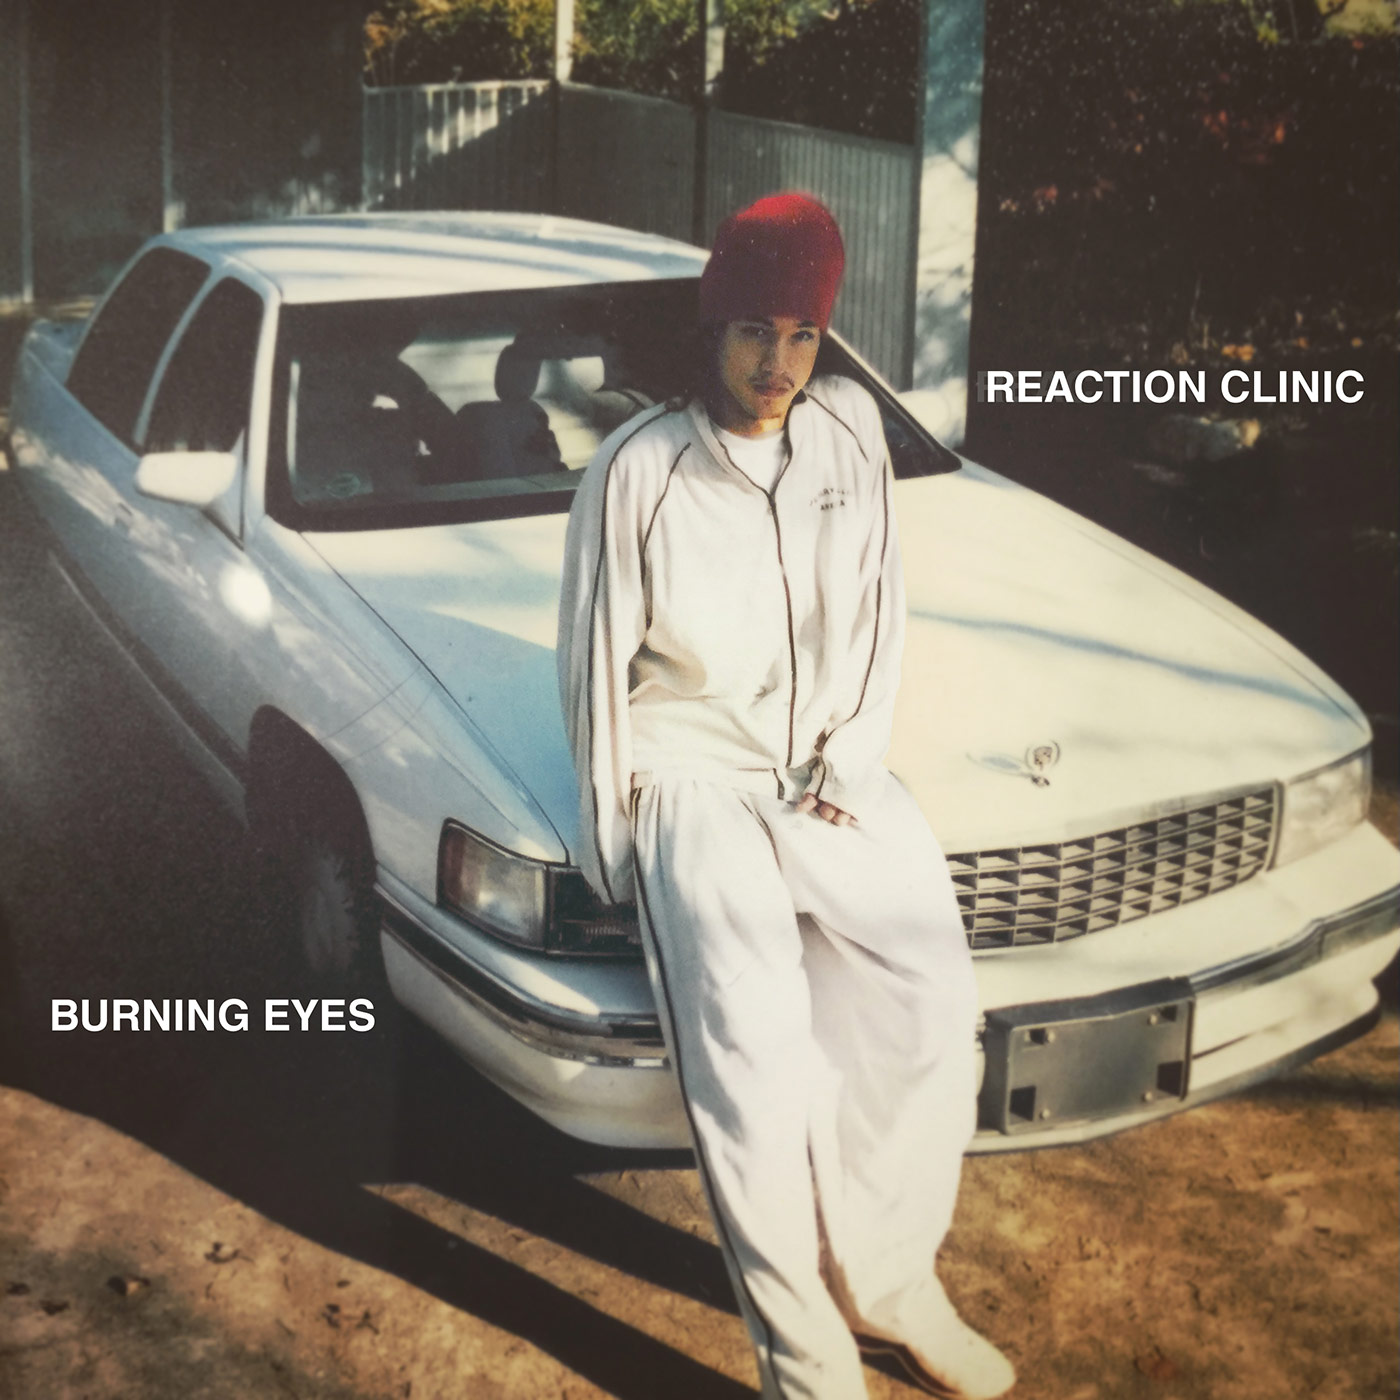 reaction clinic - burning eyes ep